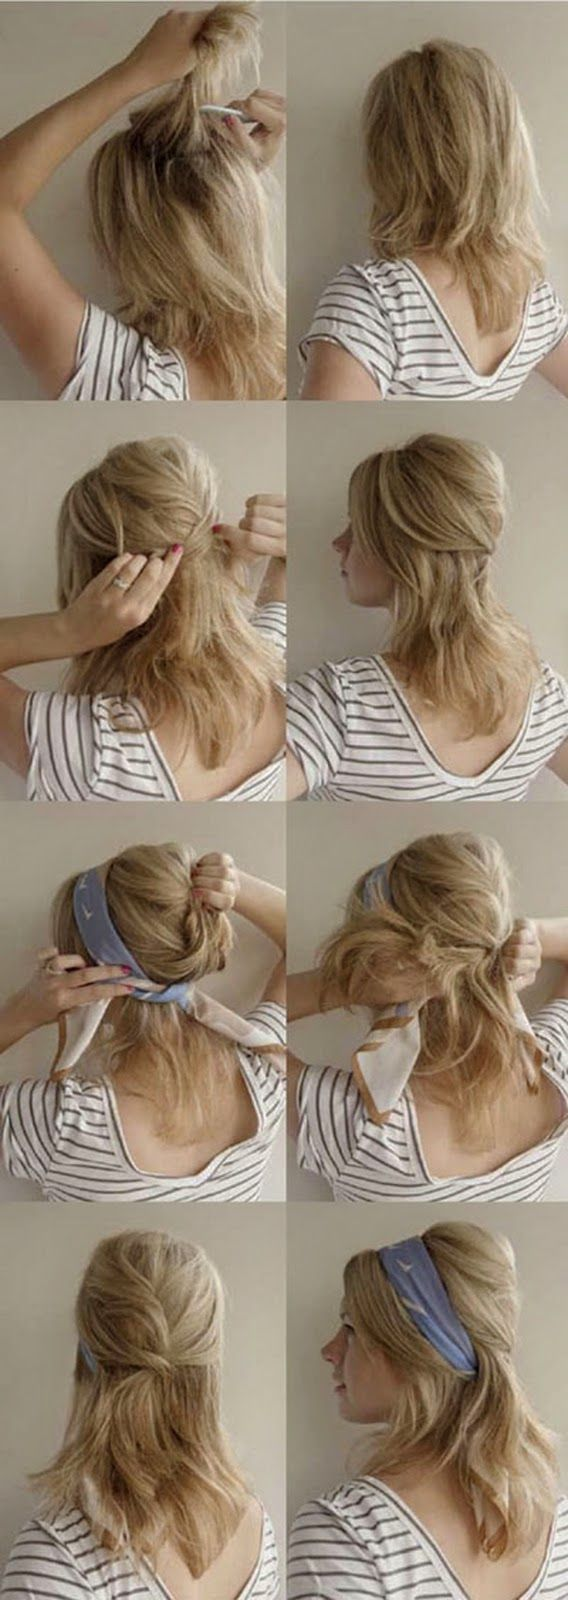 Hair + Scarf @nikki striefler striefler Lanser Here is how you could do it with you hair